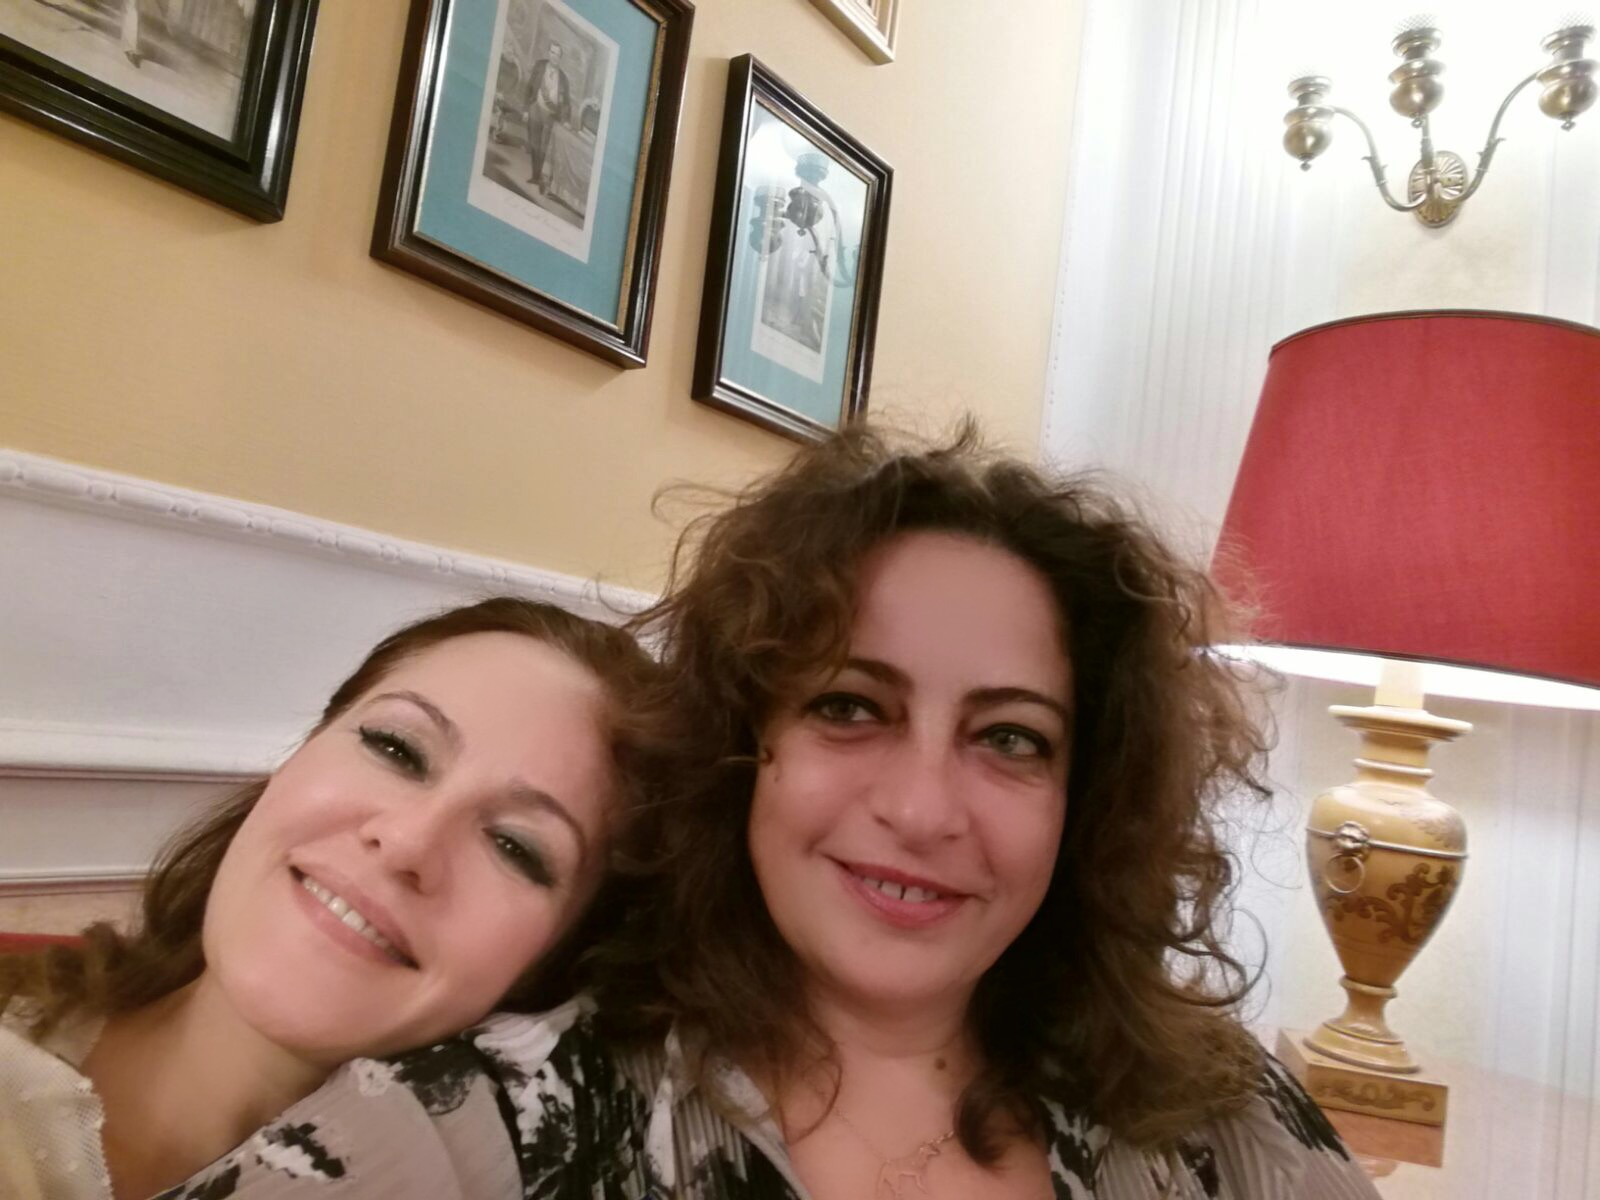 Paola Tonussi and Maria Grazia Filippi in Rome, November 2016 _